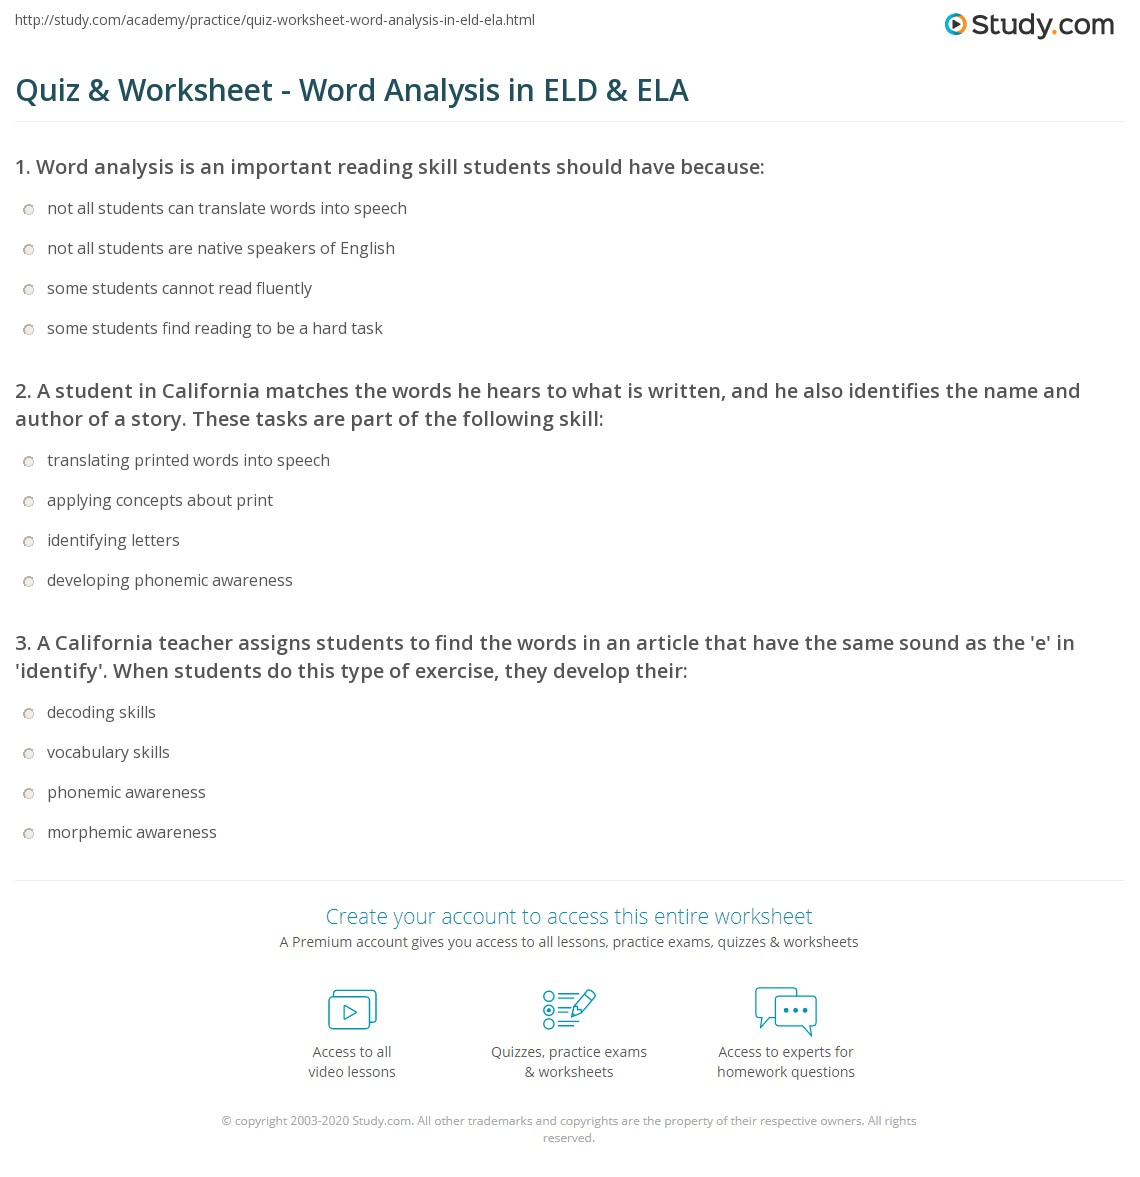 Quiz worksheet word analysis in eld ela study 1 a student in california matches the words he hears to what is written and he also identifies the name and author of a story these tasks are part of the ibookread